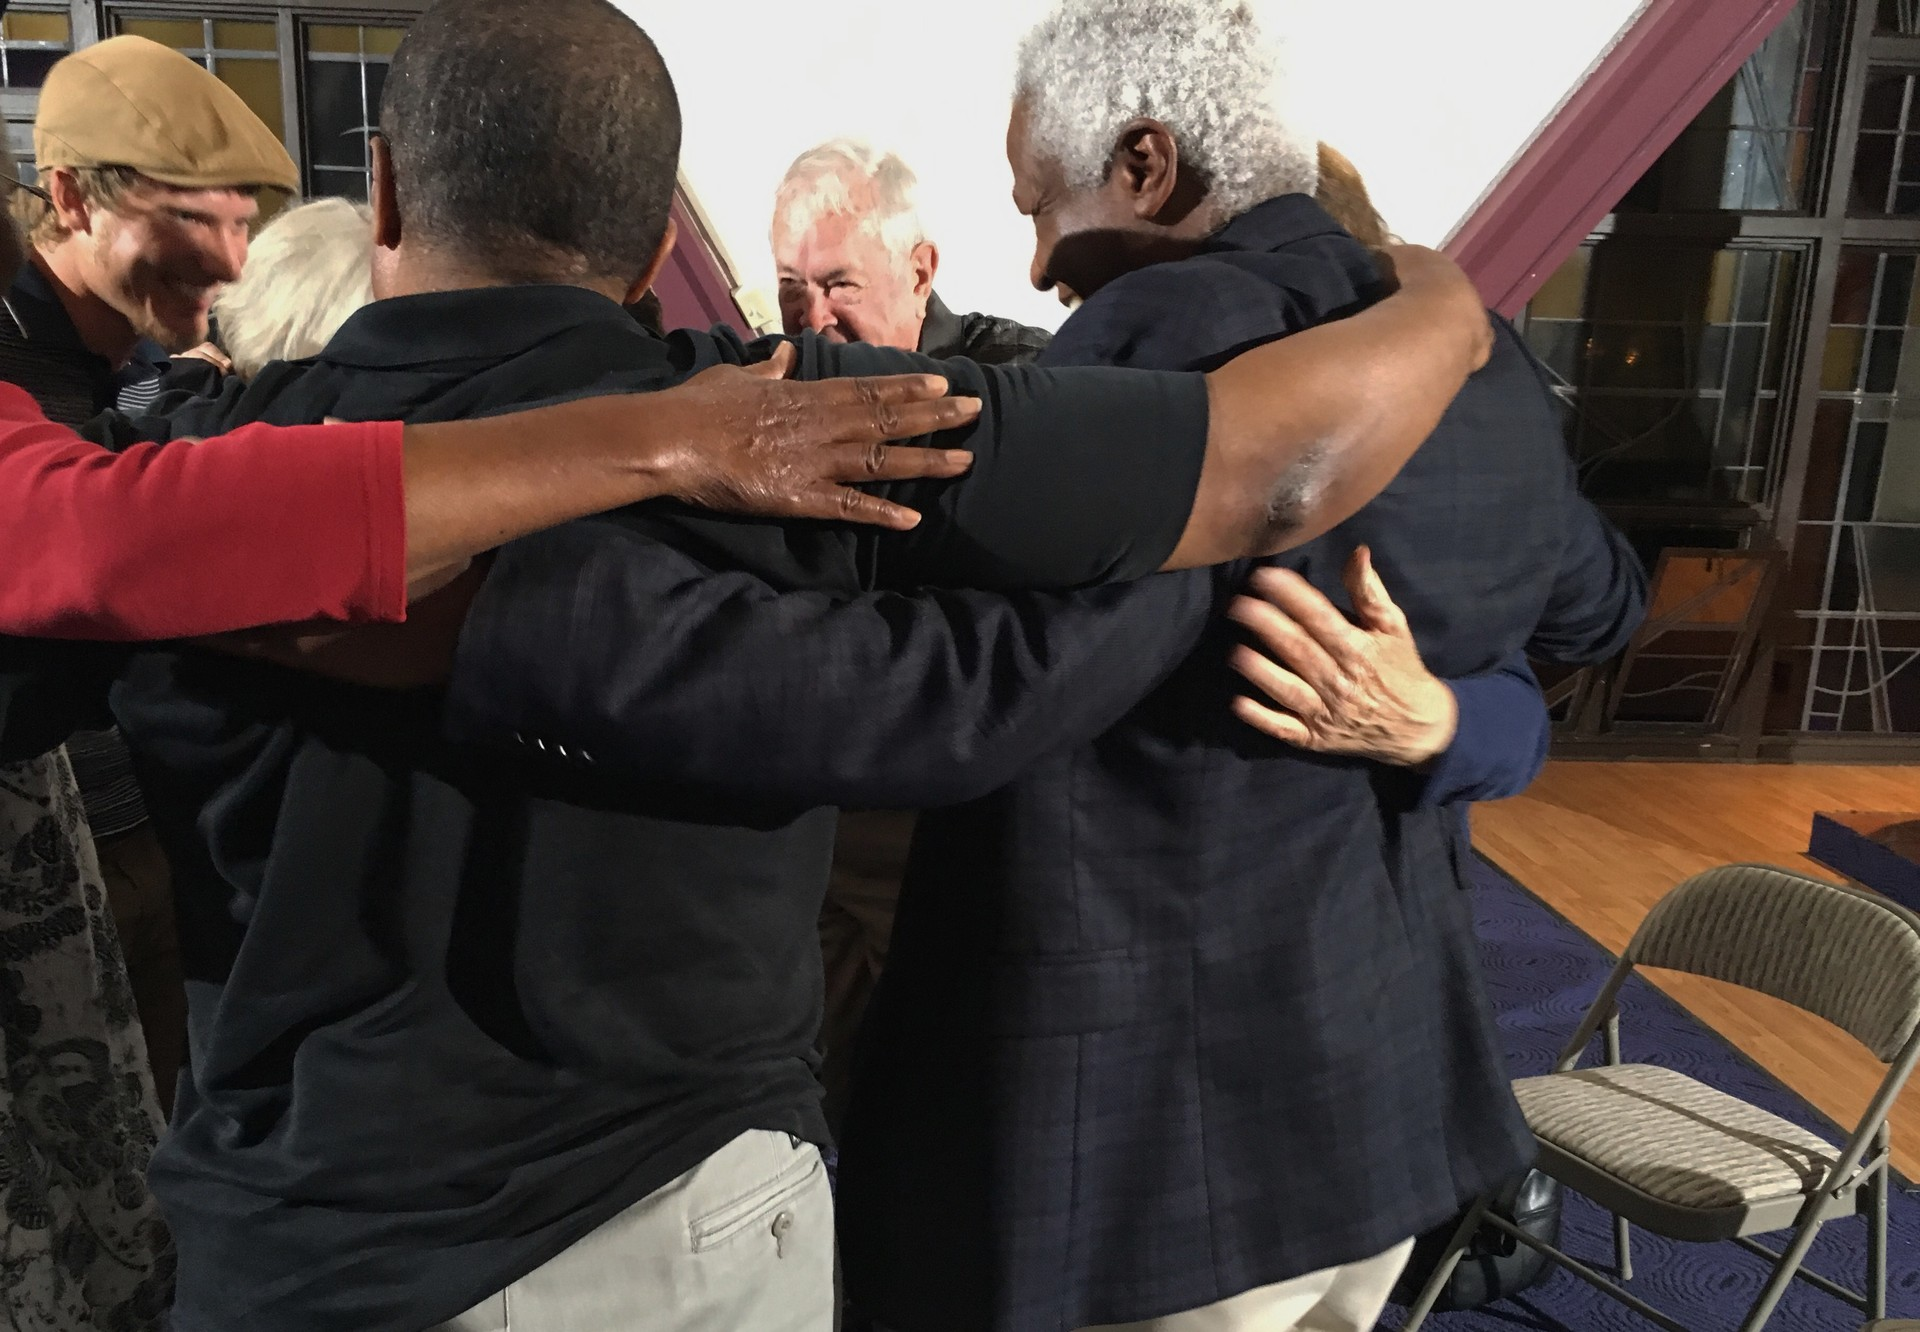 Racists Anonymous members hug after a meeting at a chapel in Sunnyvale. The diverse group includes a psychiatrist, preschool director, landscaper, and retired business executive.